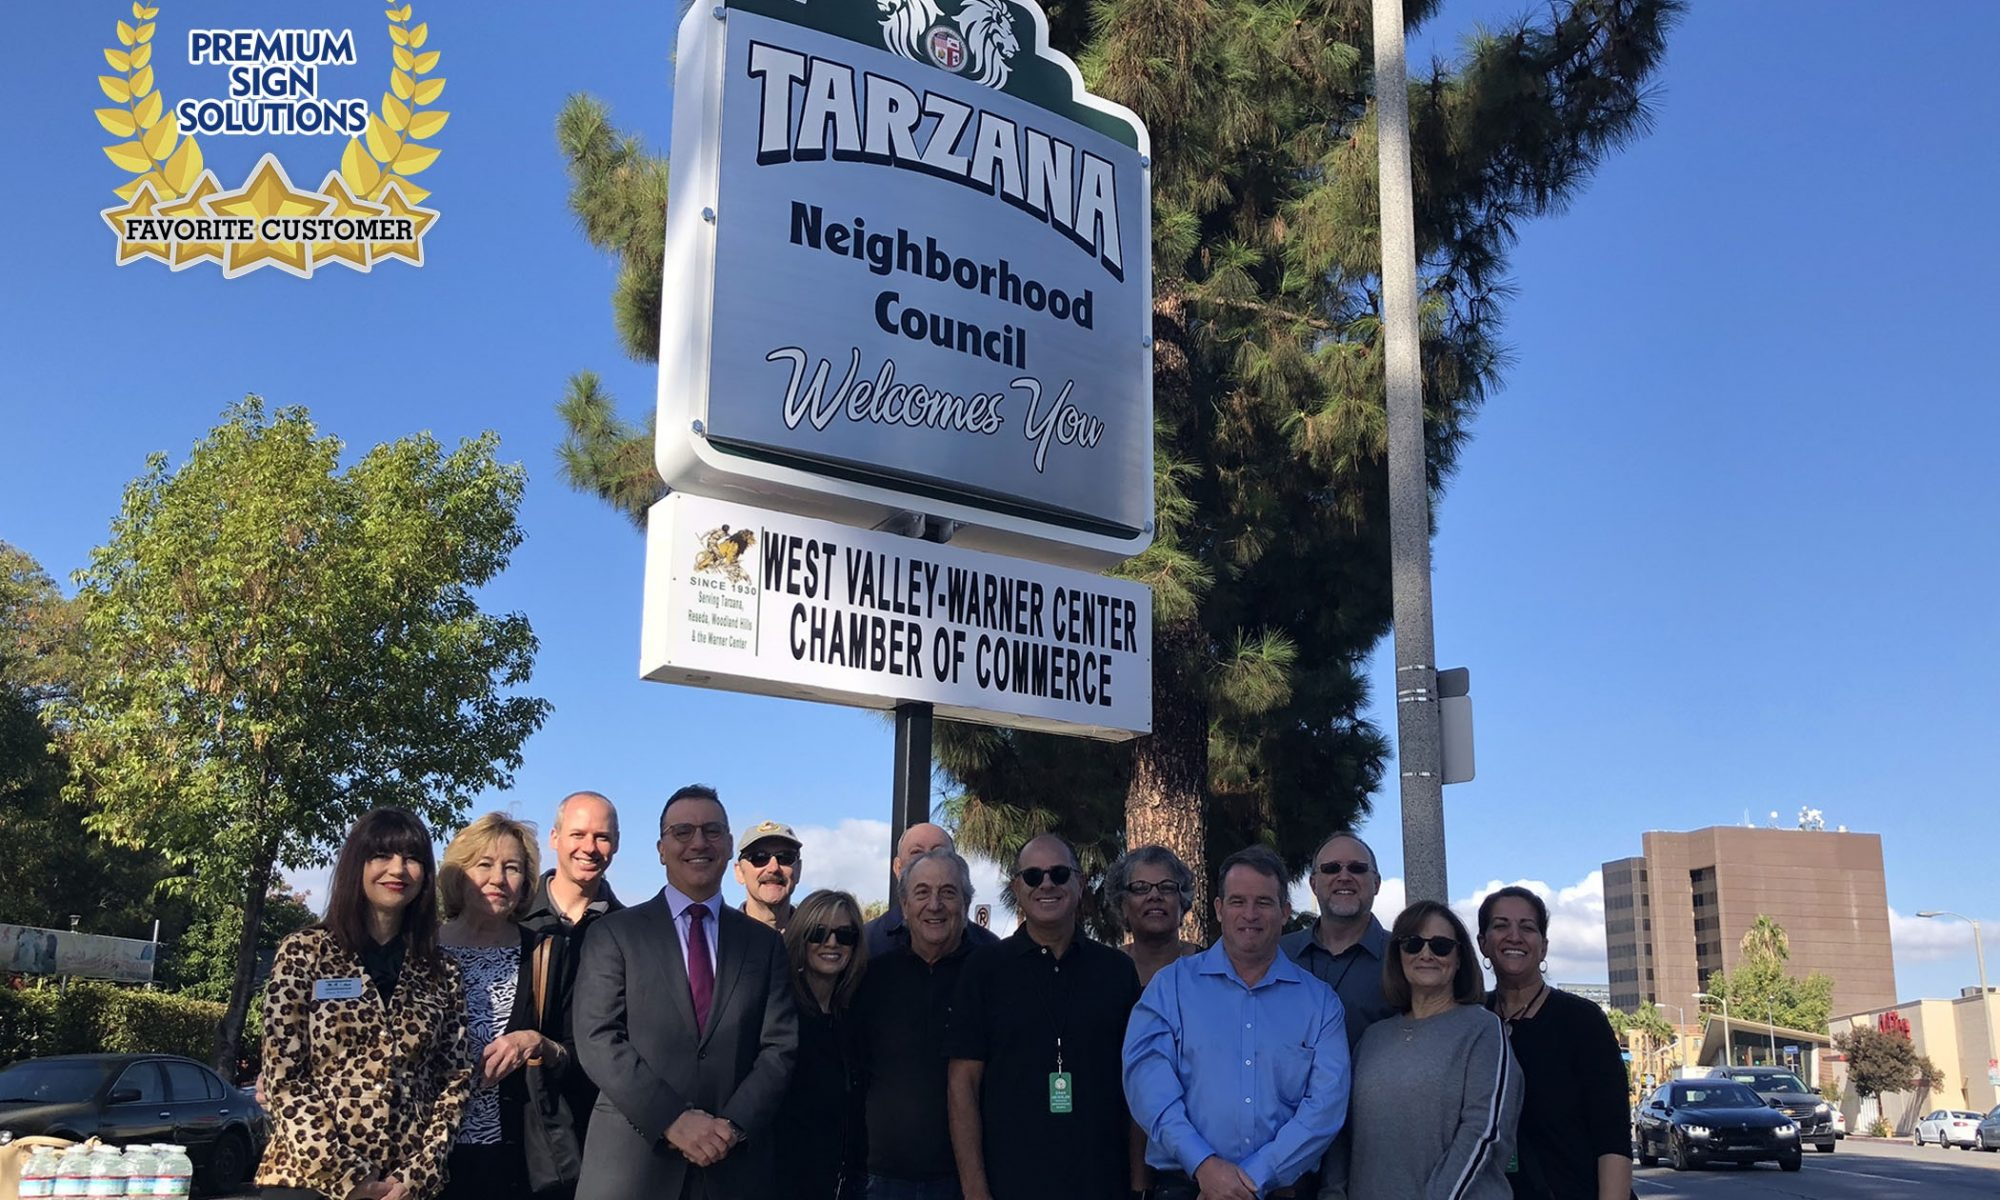 We recognize another one of our favorite customers and communities, the Tarzana Neighborhood Council, embodied by this Welcome to Tarzana sign.